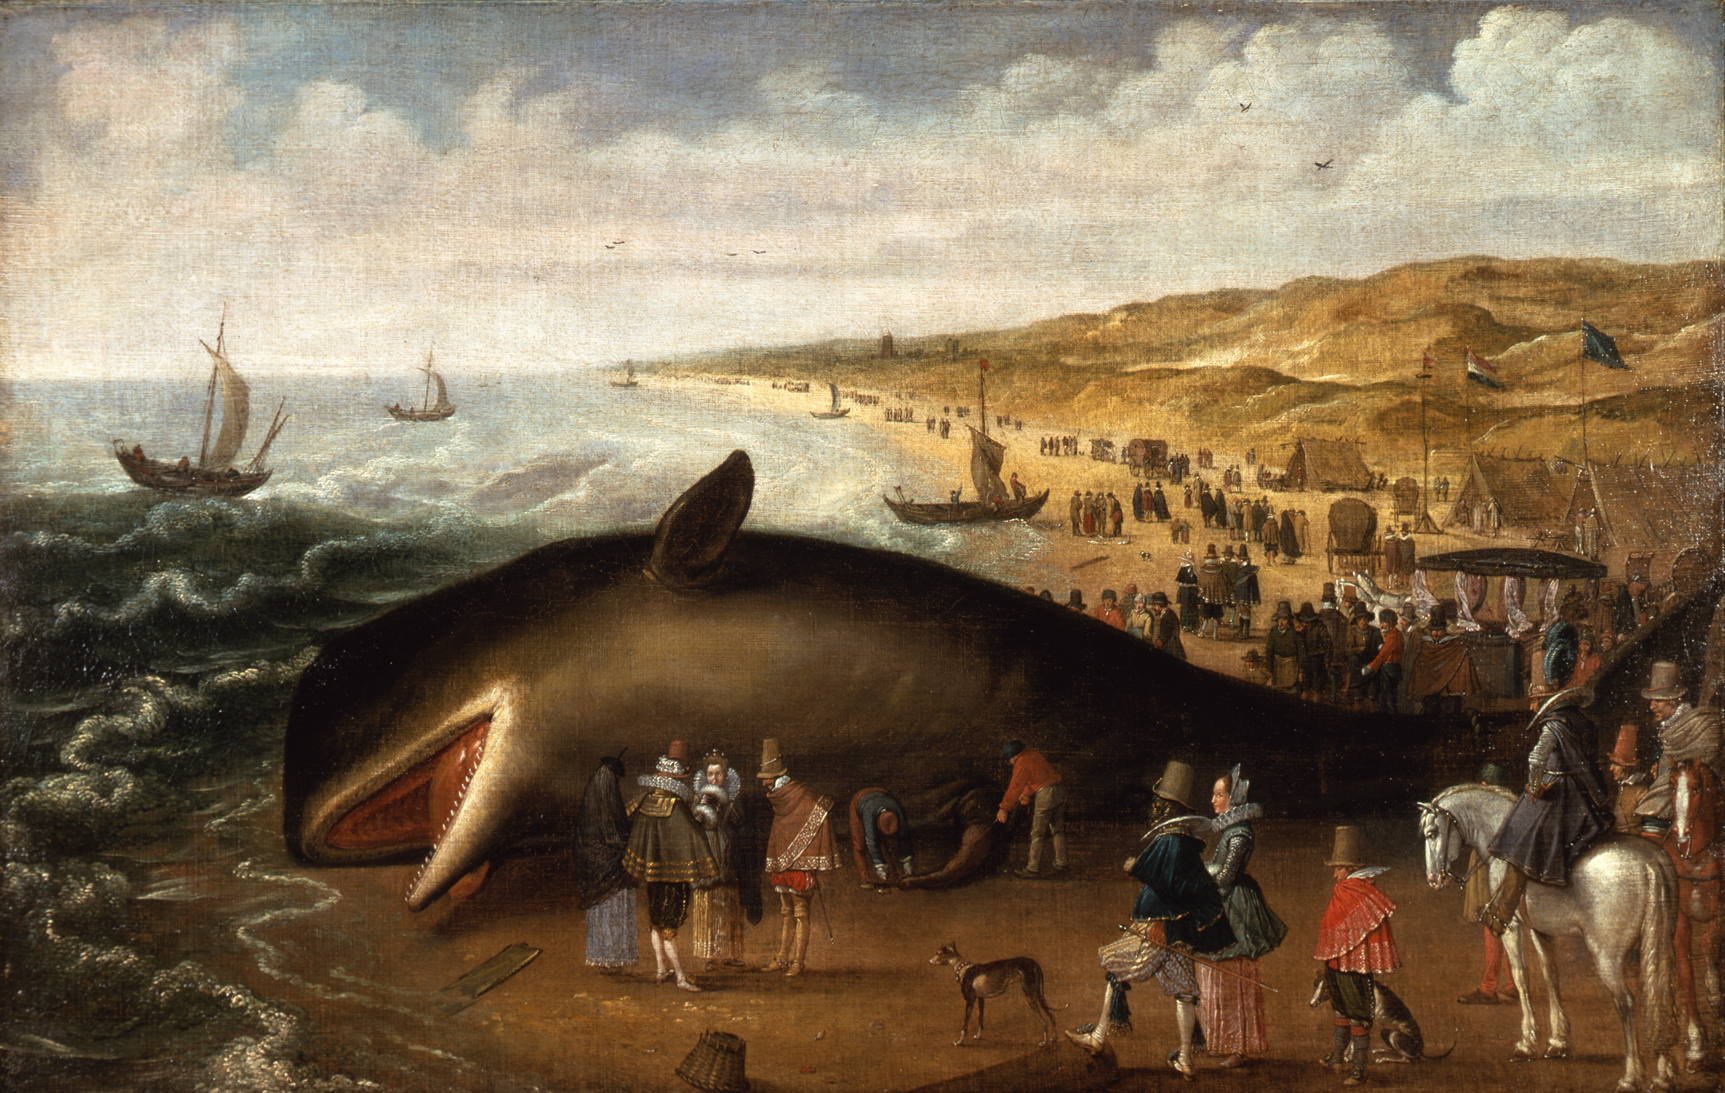 Whales have fascinated human onlookers since antiquity, but as this 1617 painting shows, misconceptions about whale anatomy persisted for centuries .  Esaias van de Velde/Wikimedia Commons  (public domain